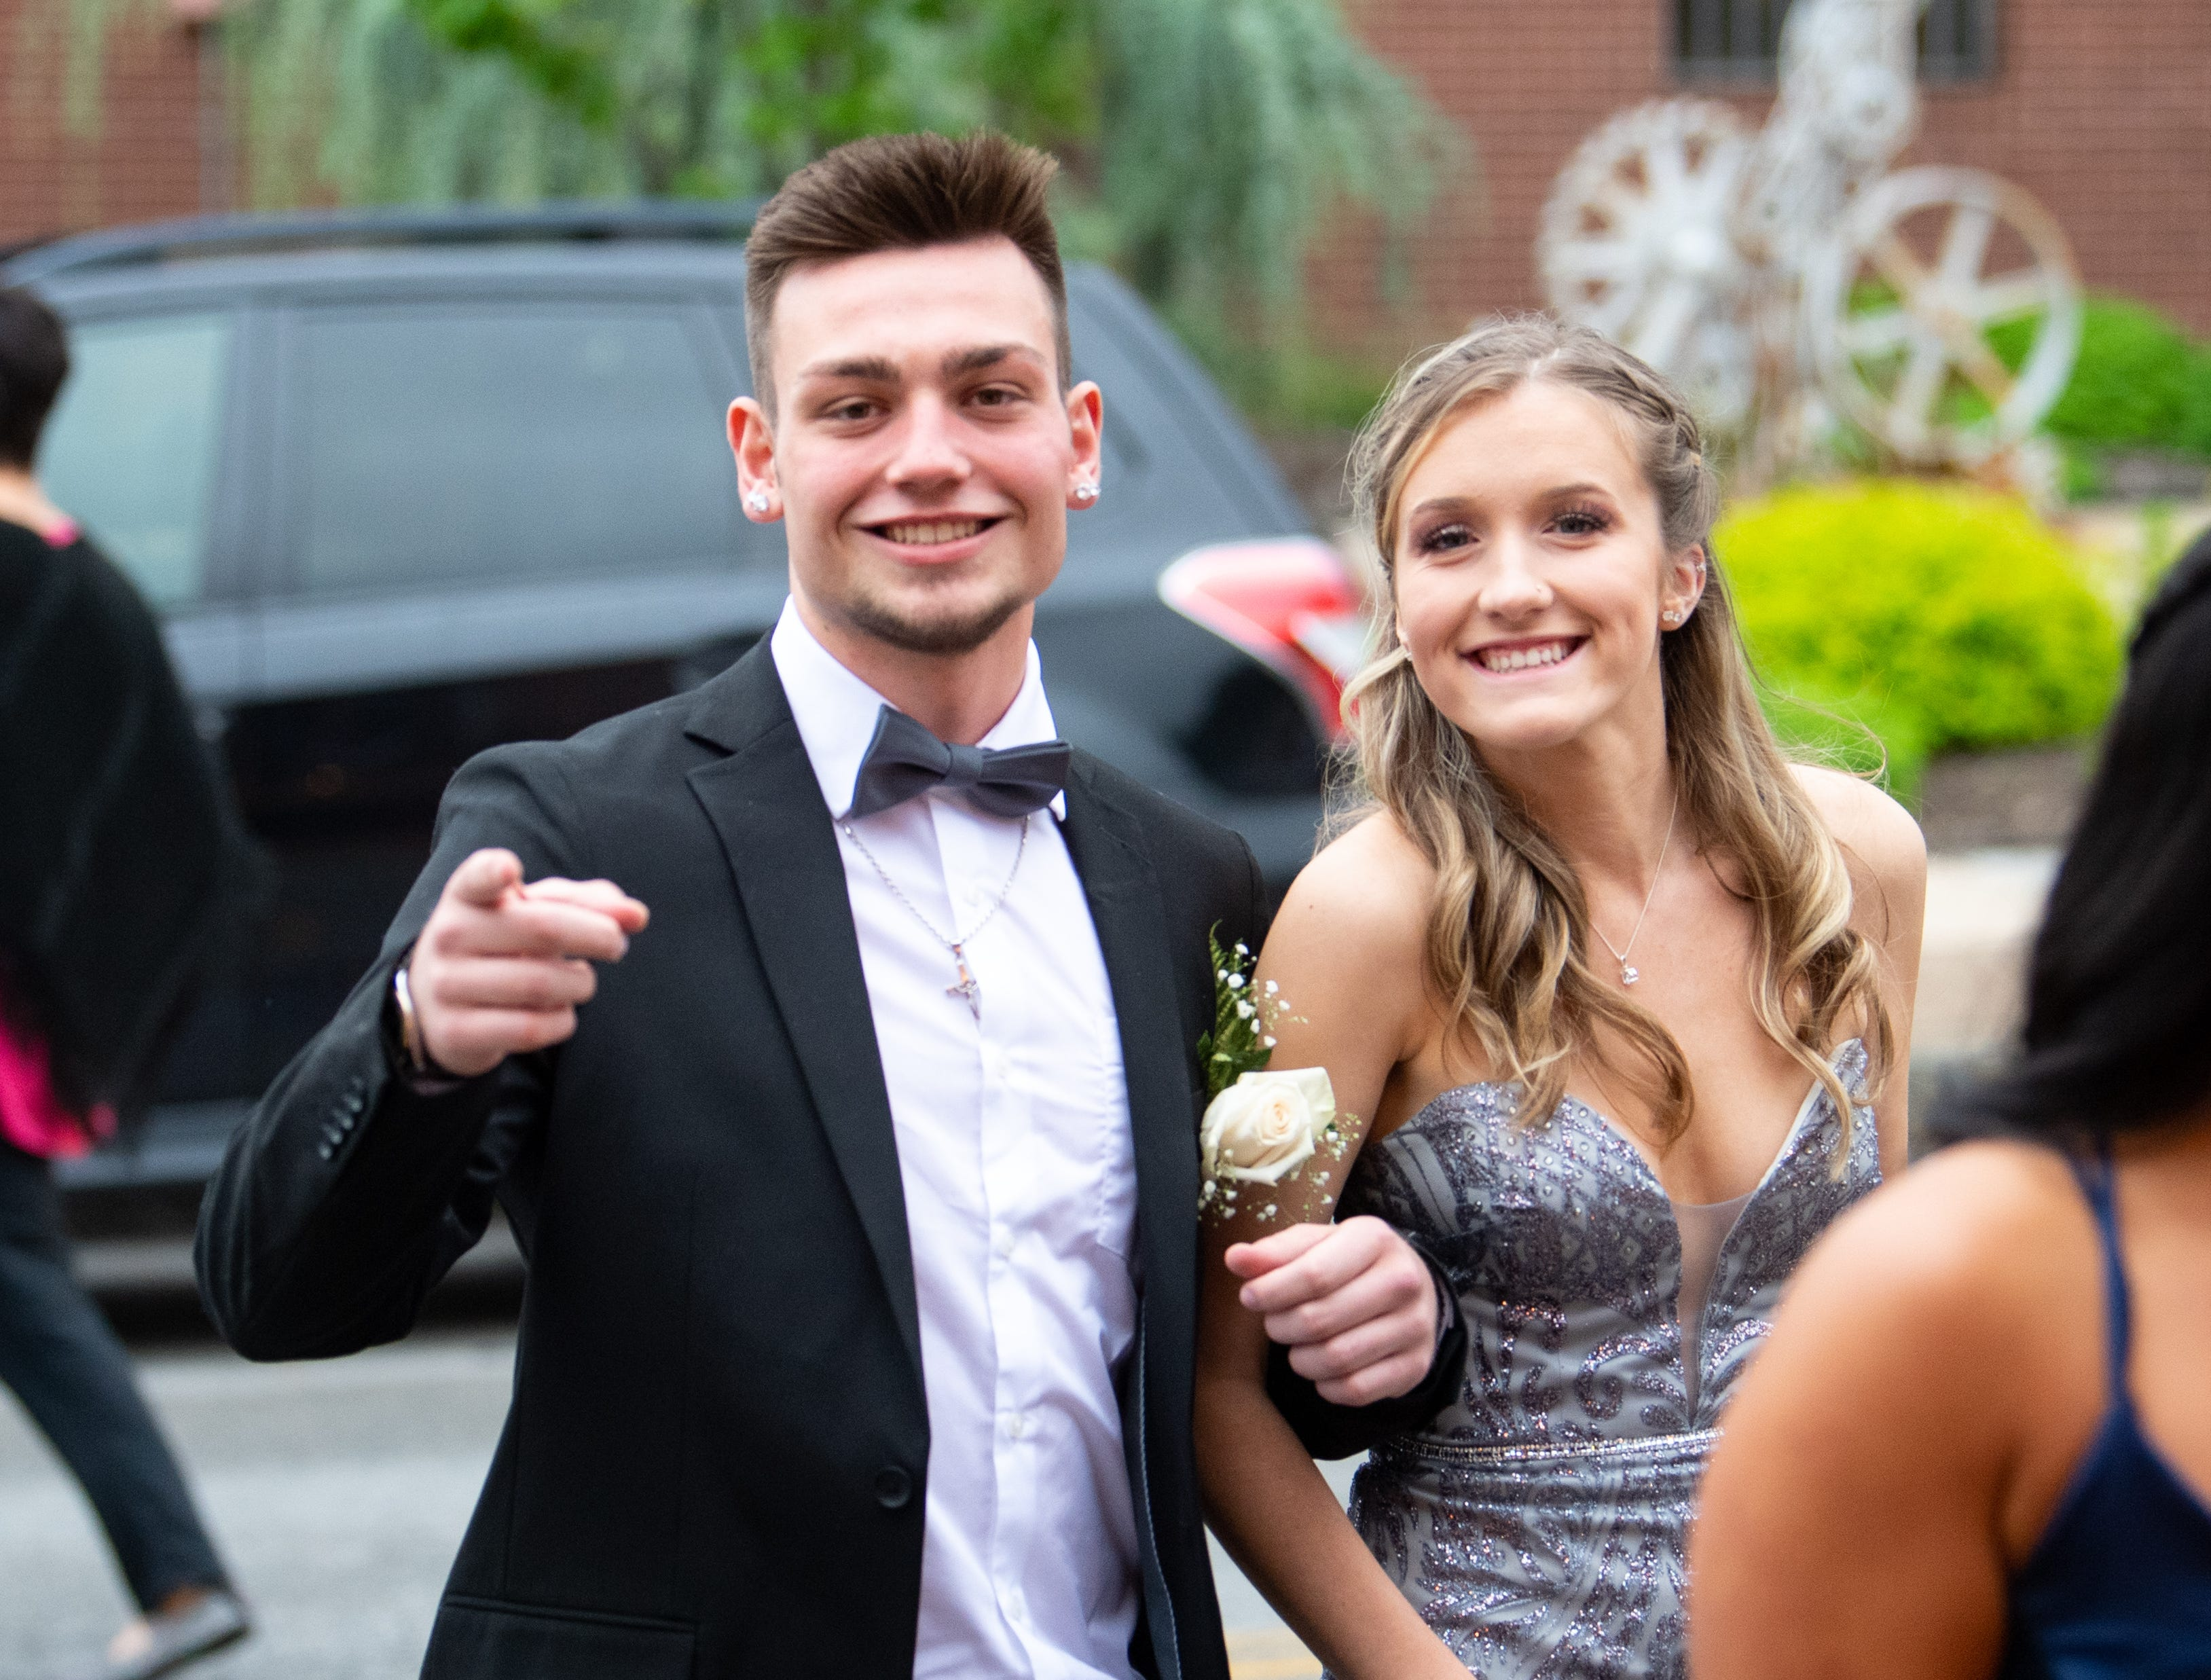 Students and their guests arrive at the Valencia Ballroom, Saturday, May 11, 2019 for the York Suburban High School prom.